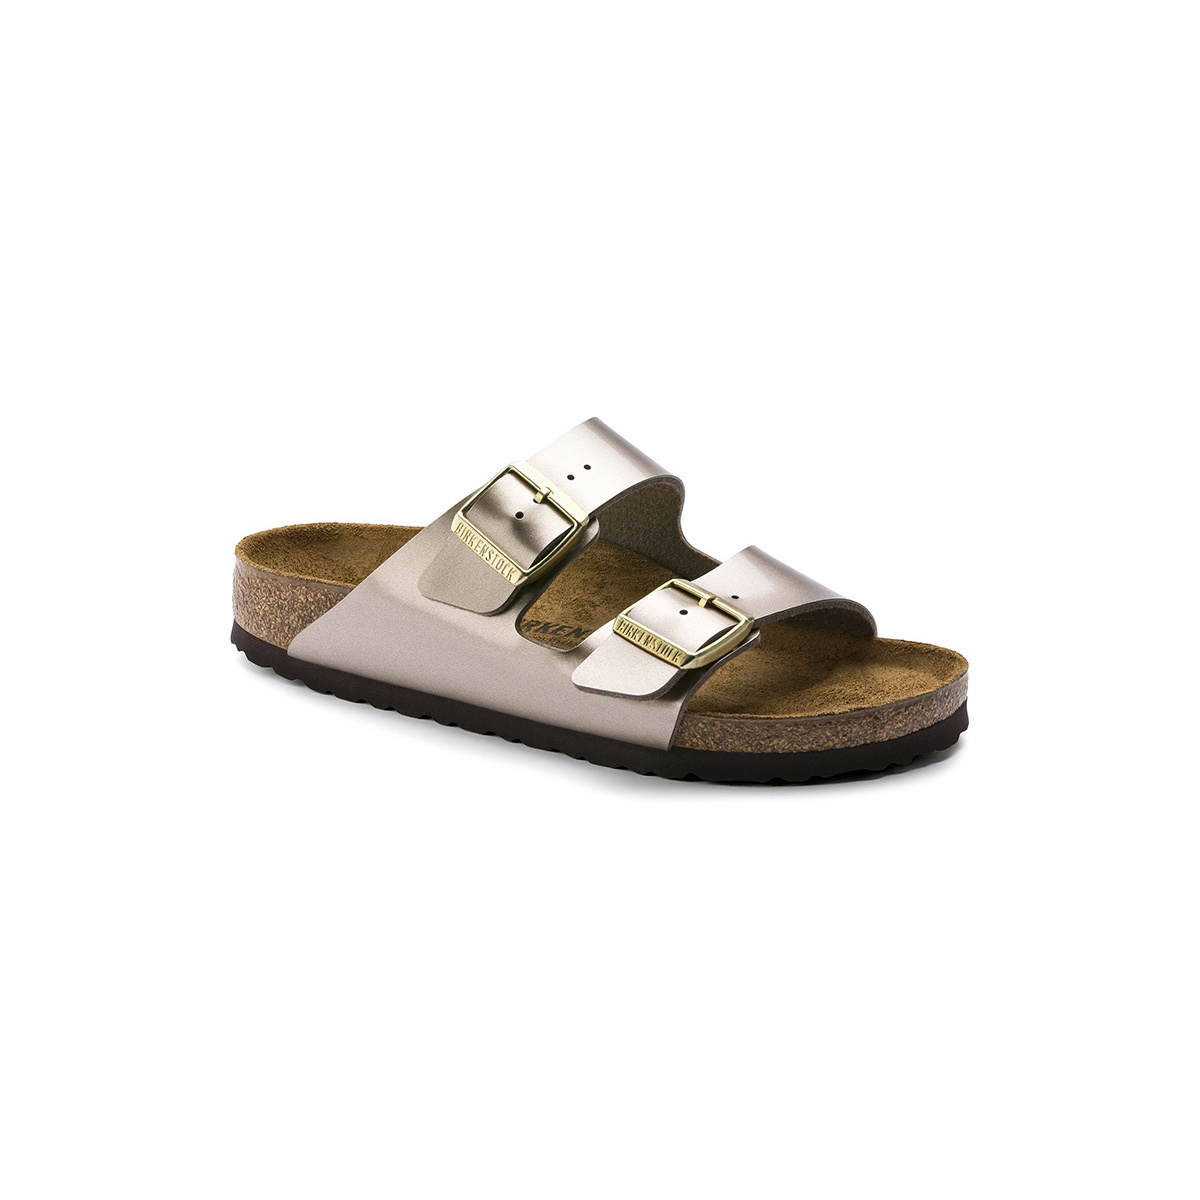 Birkenstock Arizona Birko-Flor Narrow